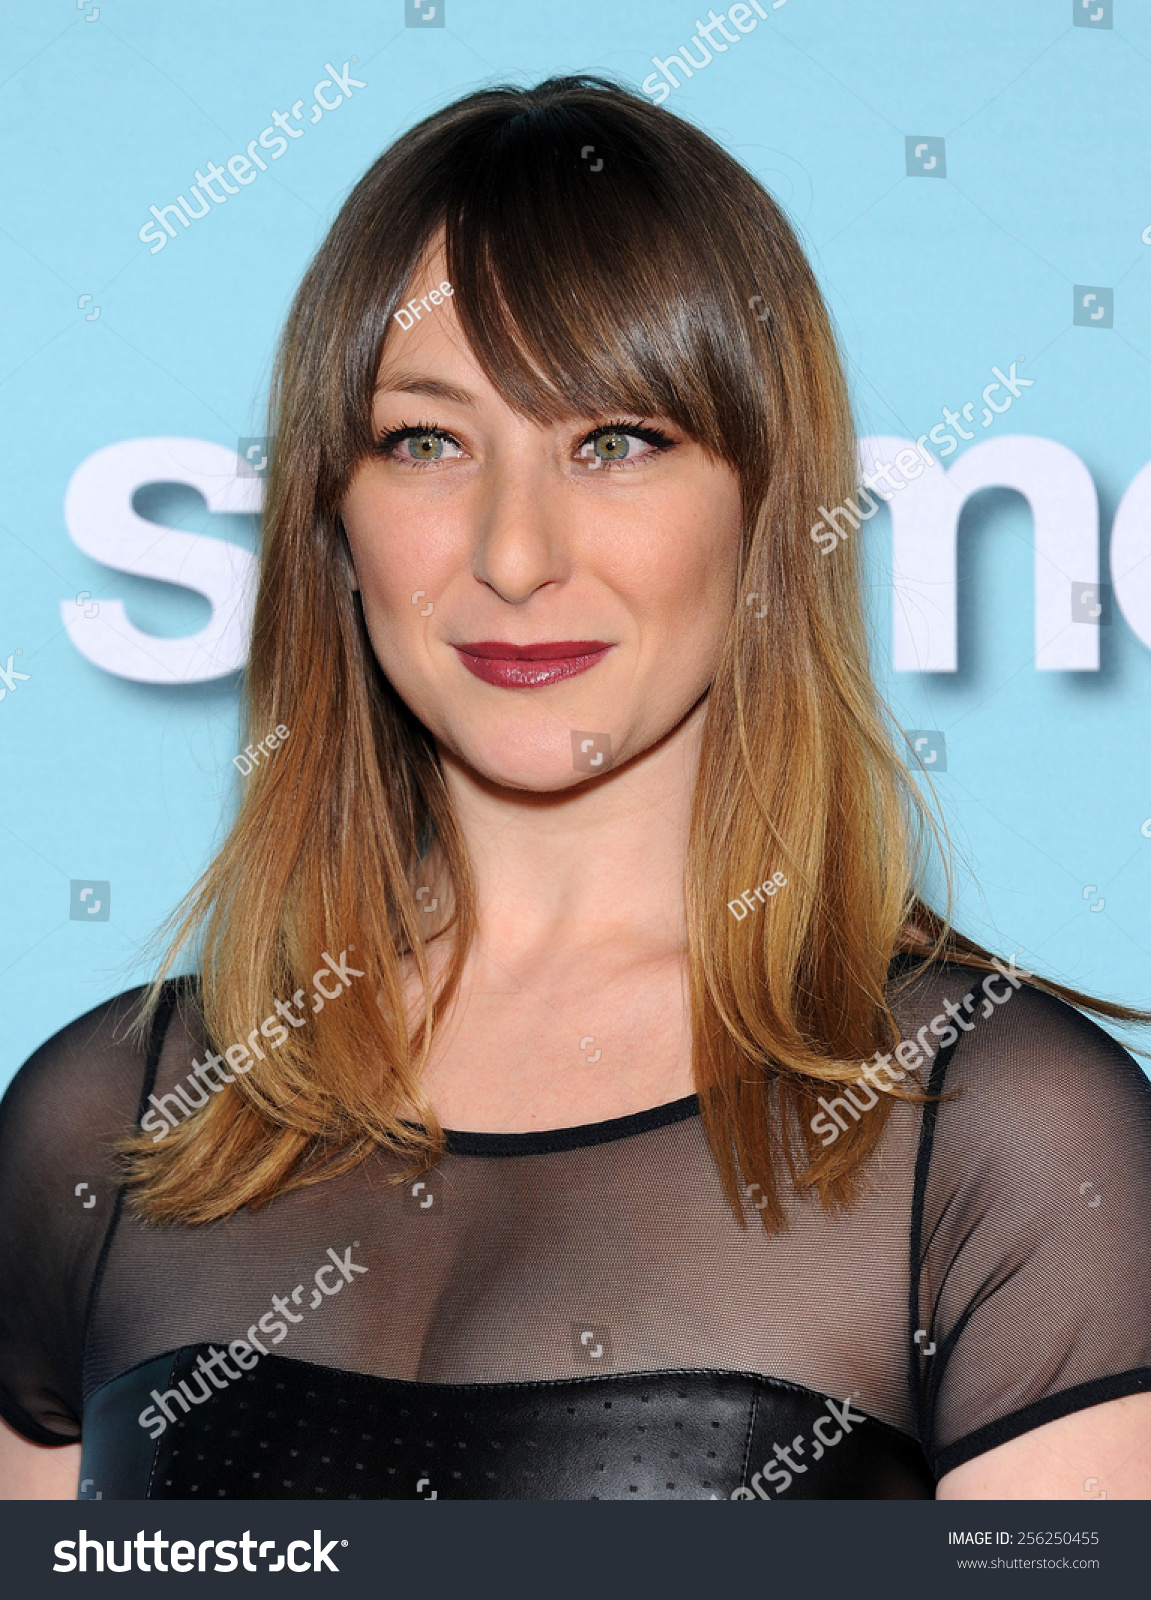 Celebrity Isidora Goreshter nude photos 2019